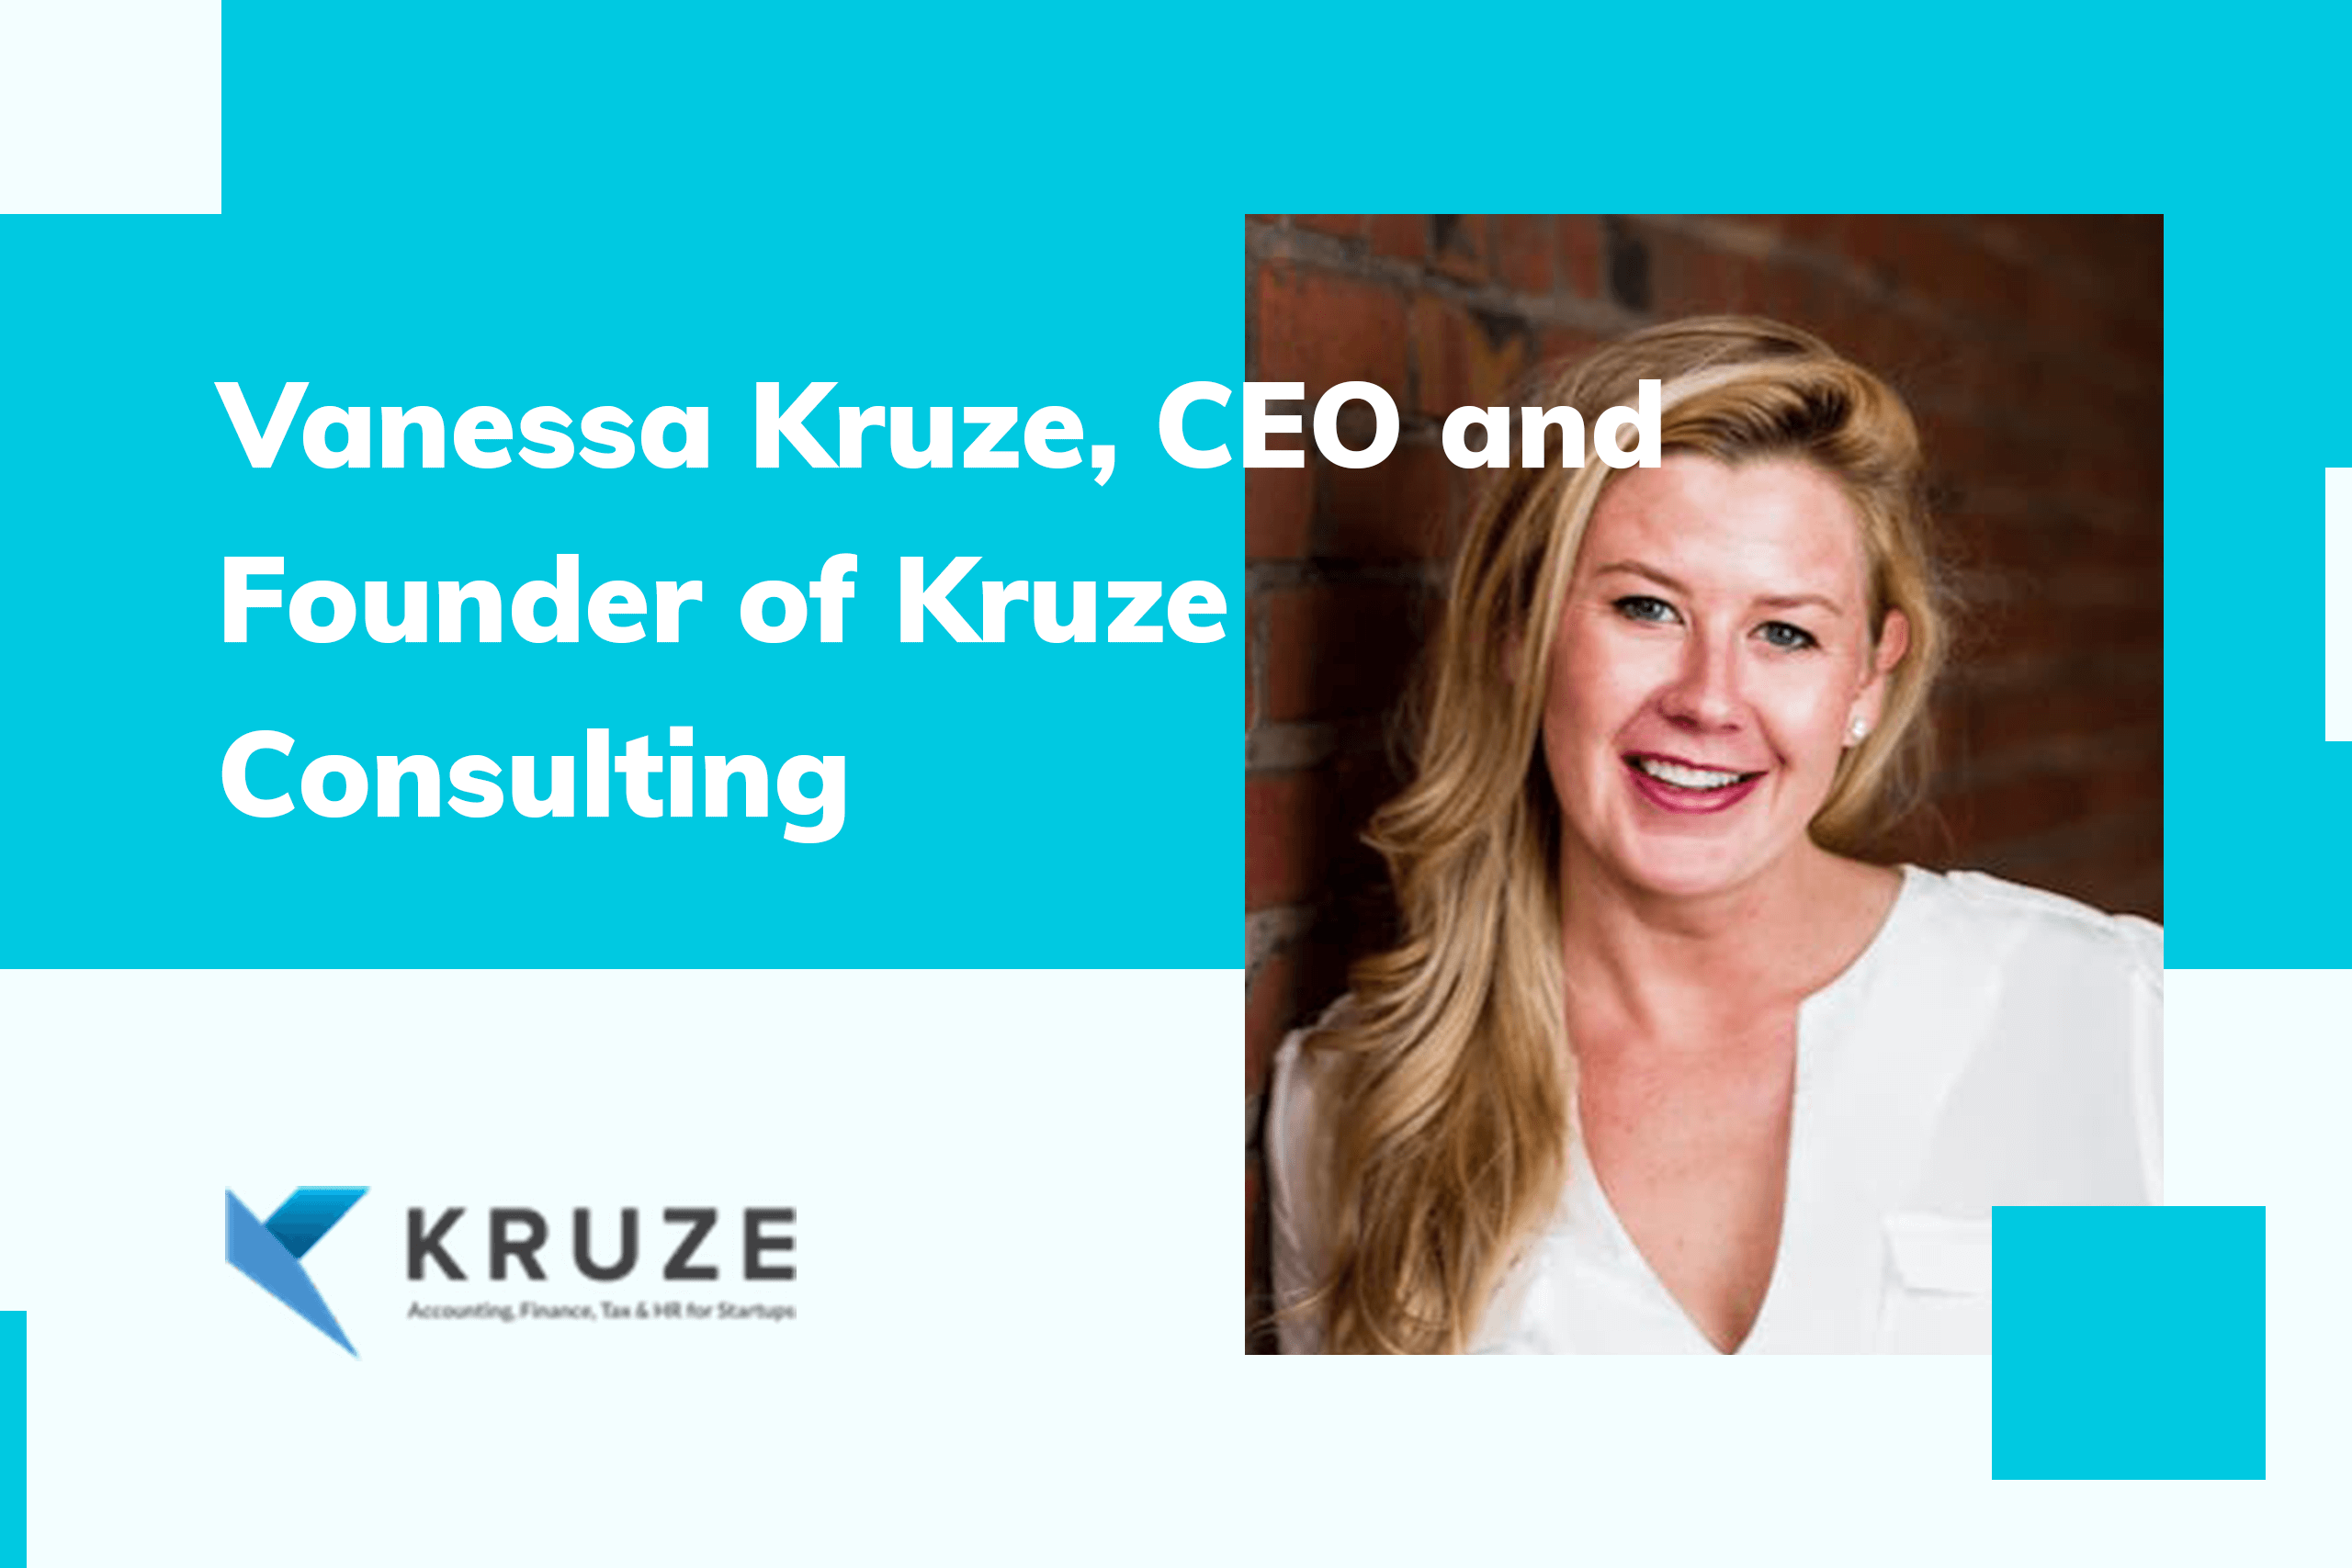 Vanessa Kruze, CEO and Founder of Kruze Consulting